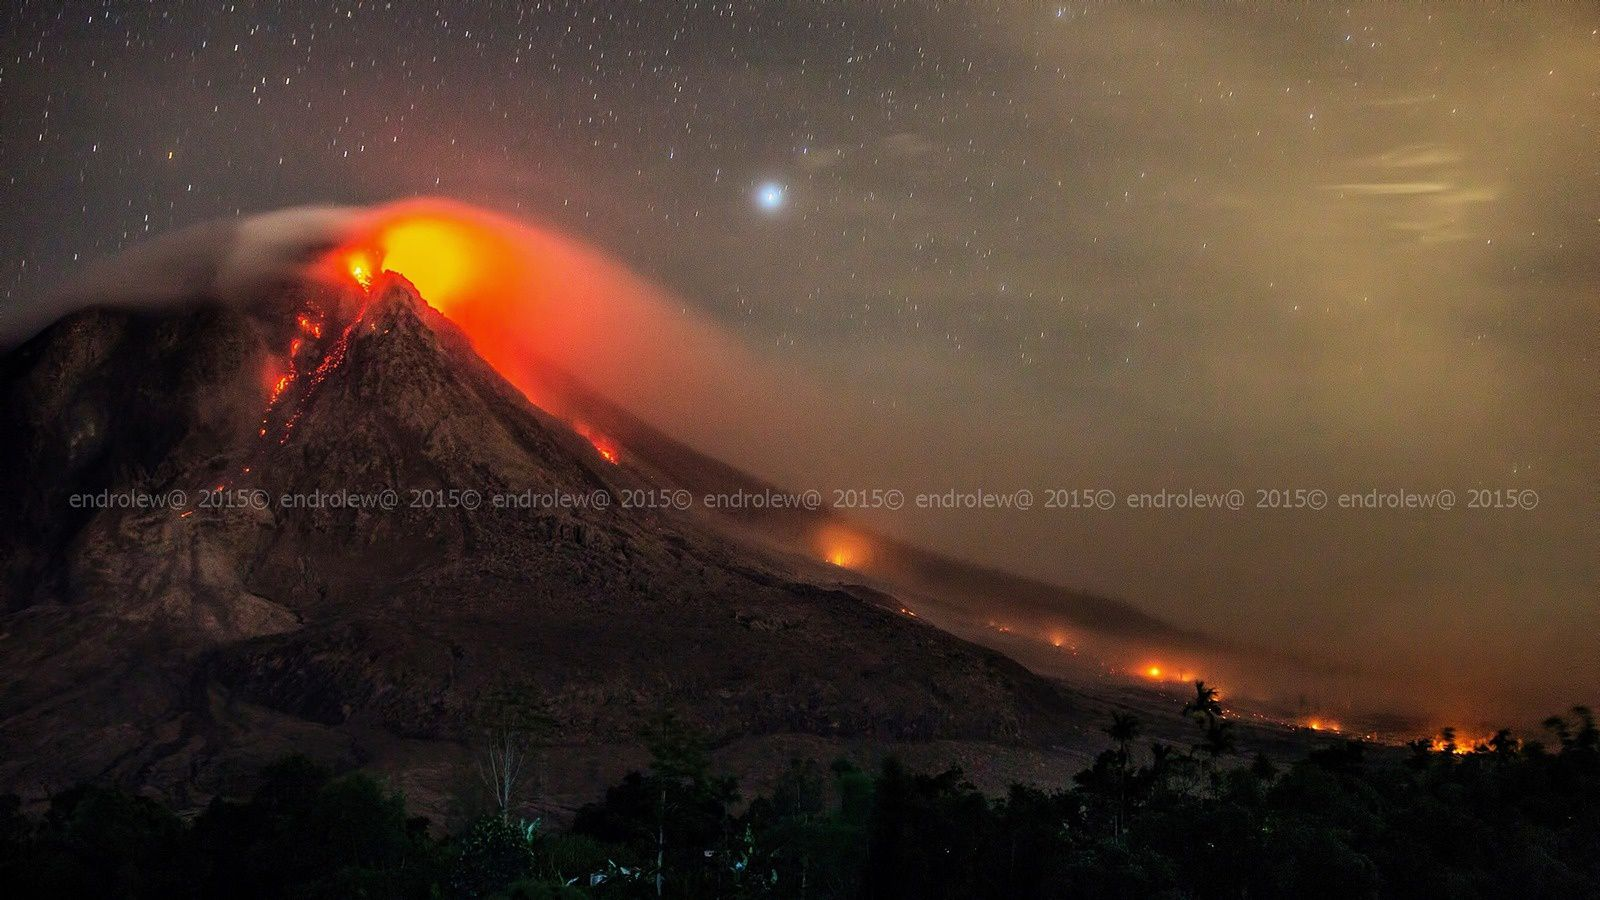 Sinabung le 22.06.2015 / 01h13 - les incendies témoignent du long trajet de la coulée matinale - photo endrolew@